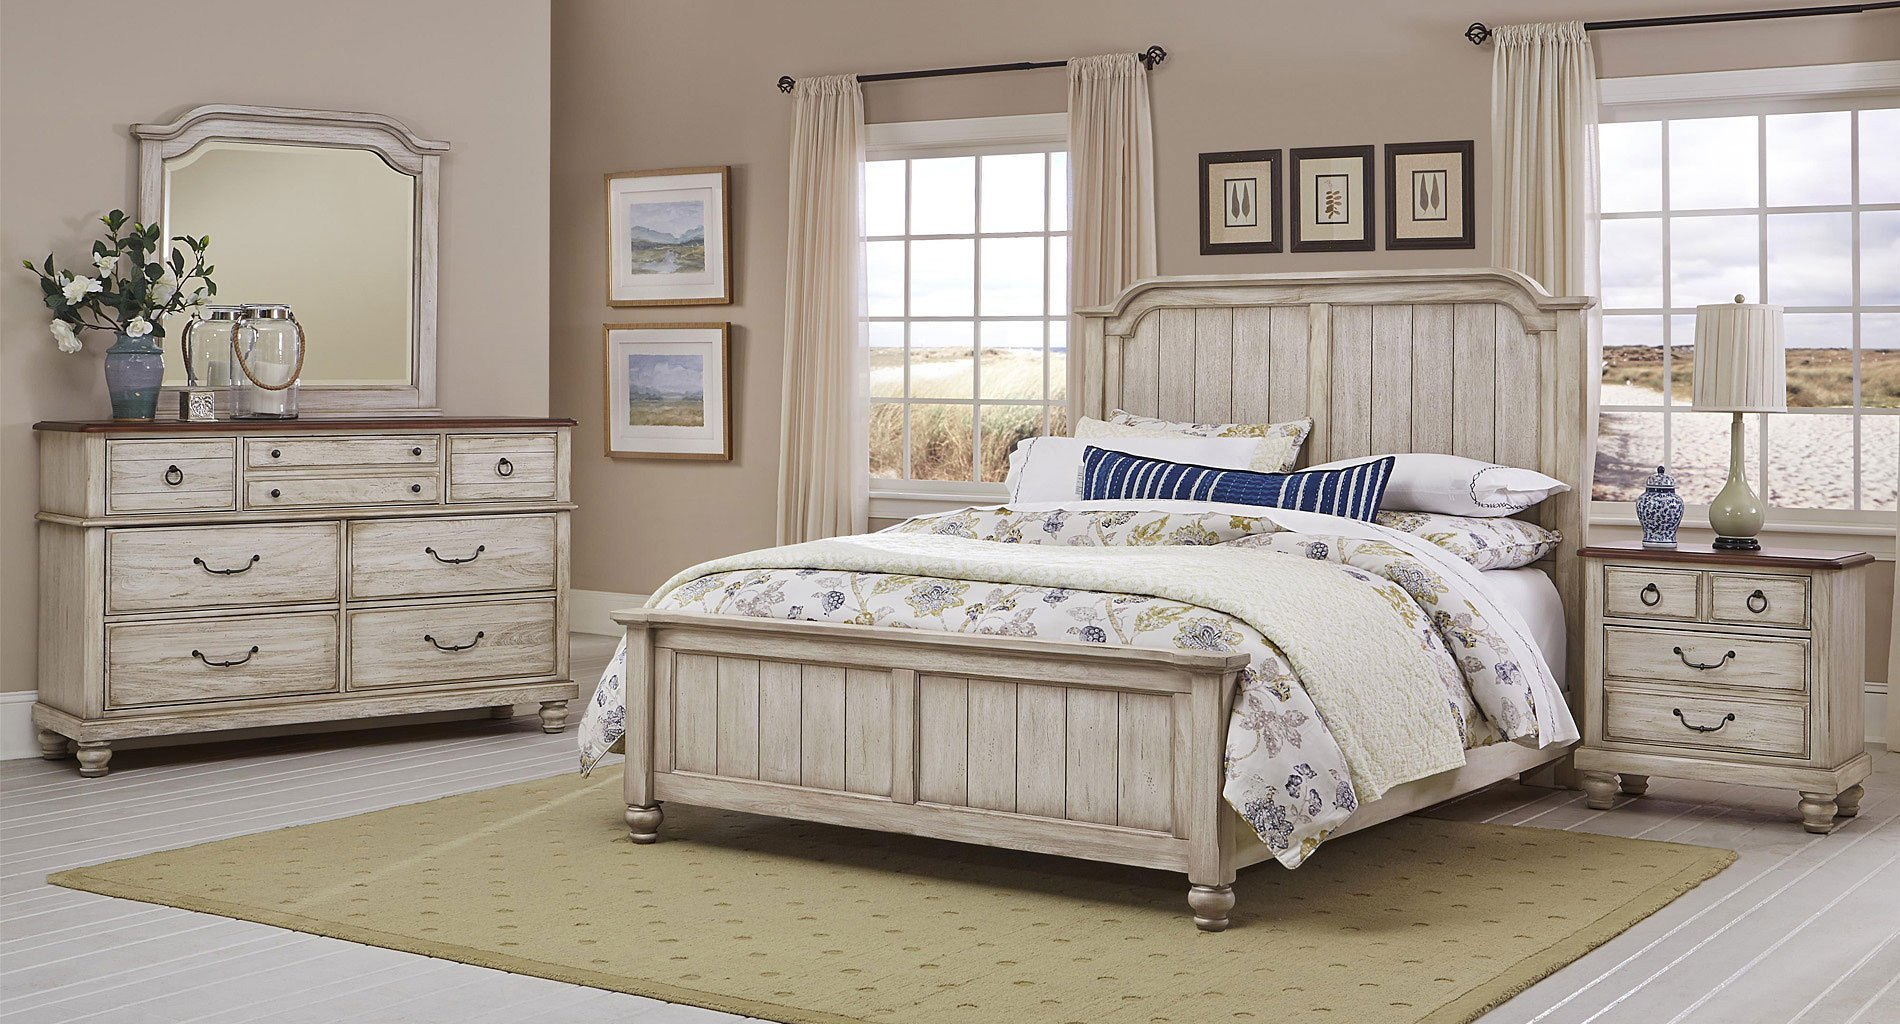 White Full Size Bedroom Set Elegant Distressed F White Bedroom Furniture